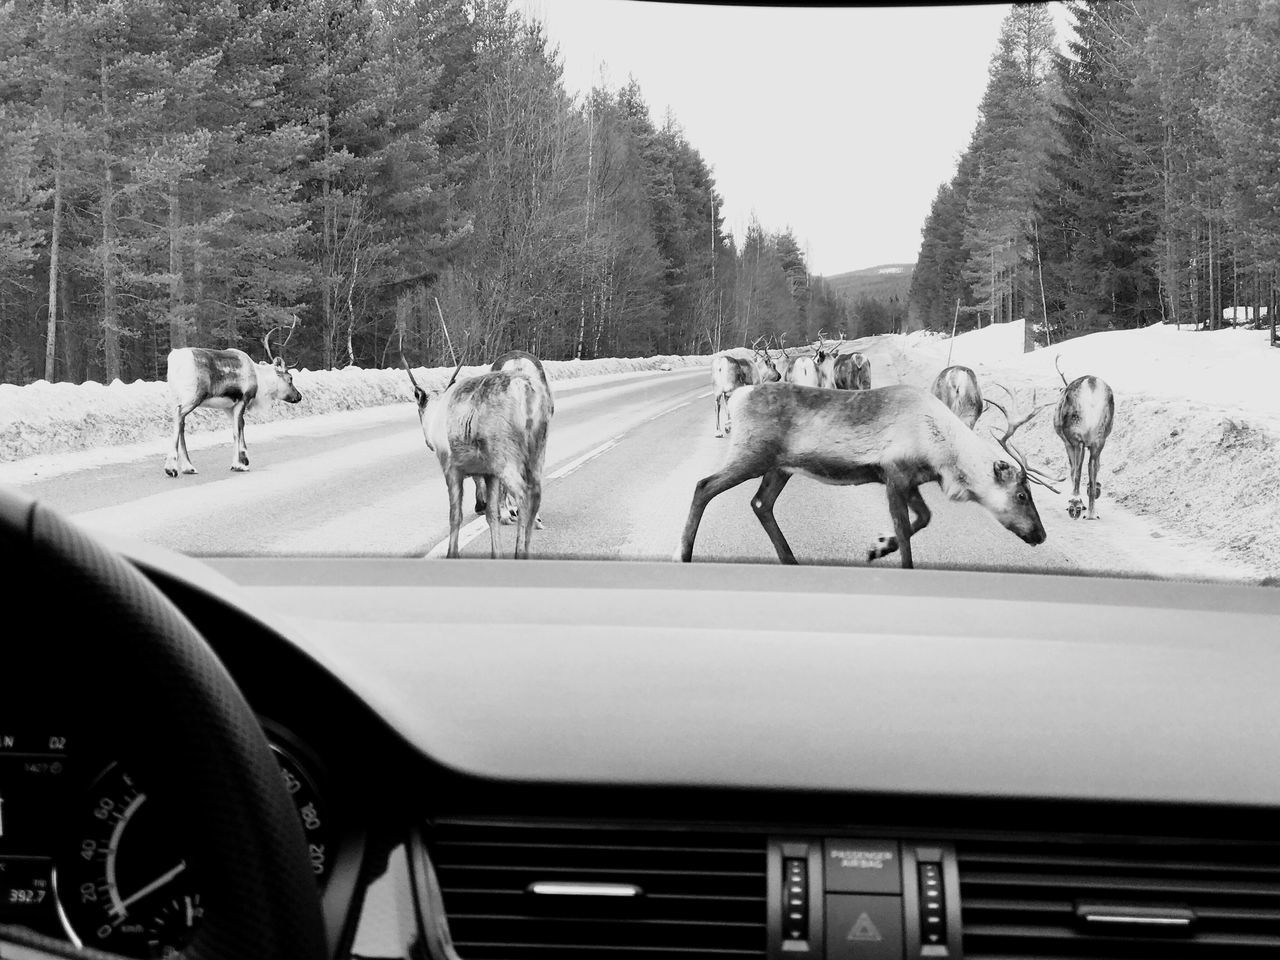 Animal Themes Tree Domestic Animals Transportation Nature Livestock Sky Day Working Animal Outdoors No People In The Middle Of The Road you know you're up north when u have to stop for this... Crossing The Street